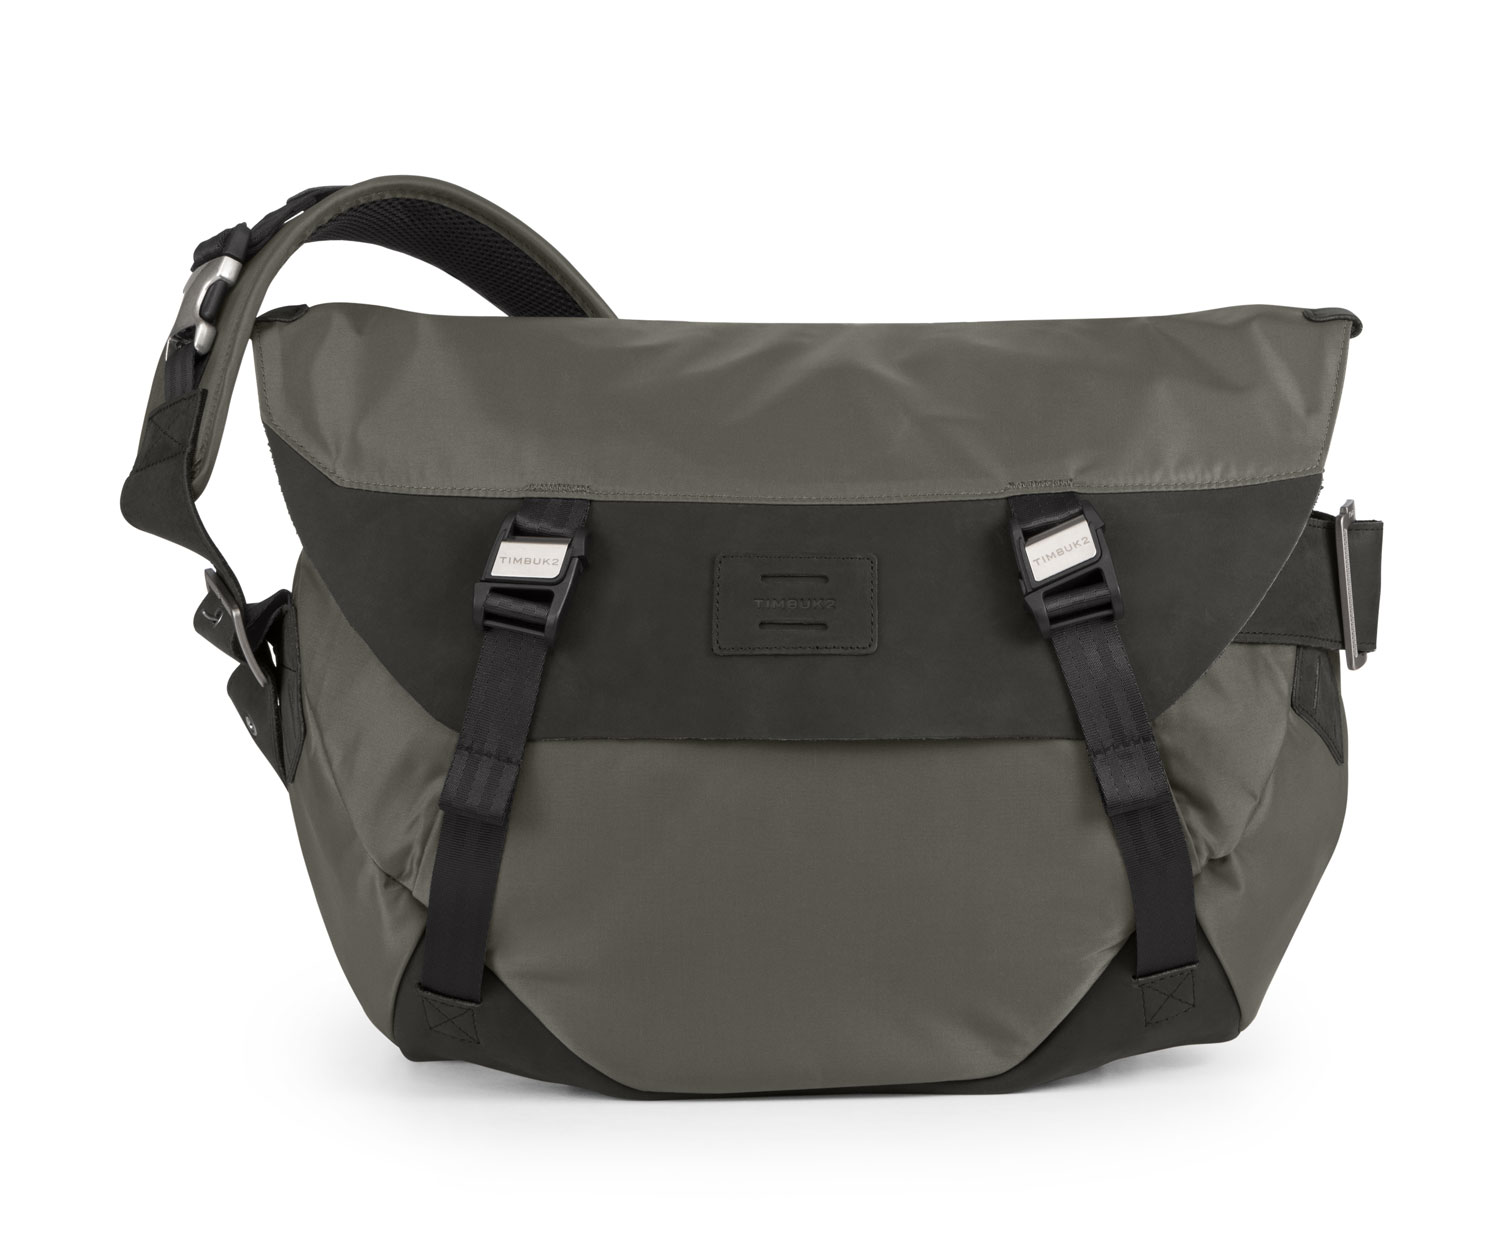 Urban Messenger Durable Bag - Bici Messenger Bag | Timbuk2 Bags